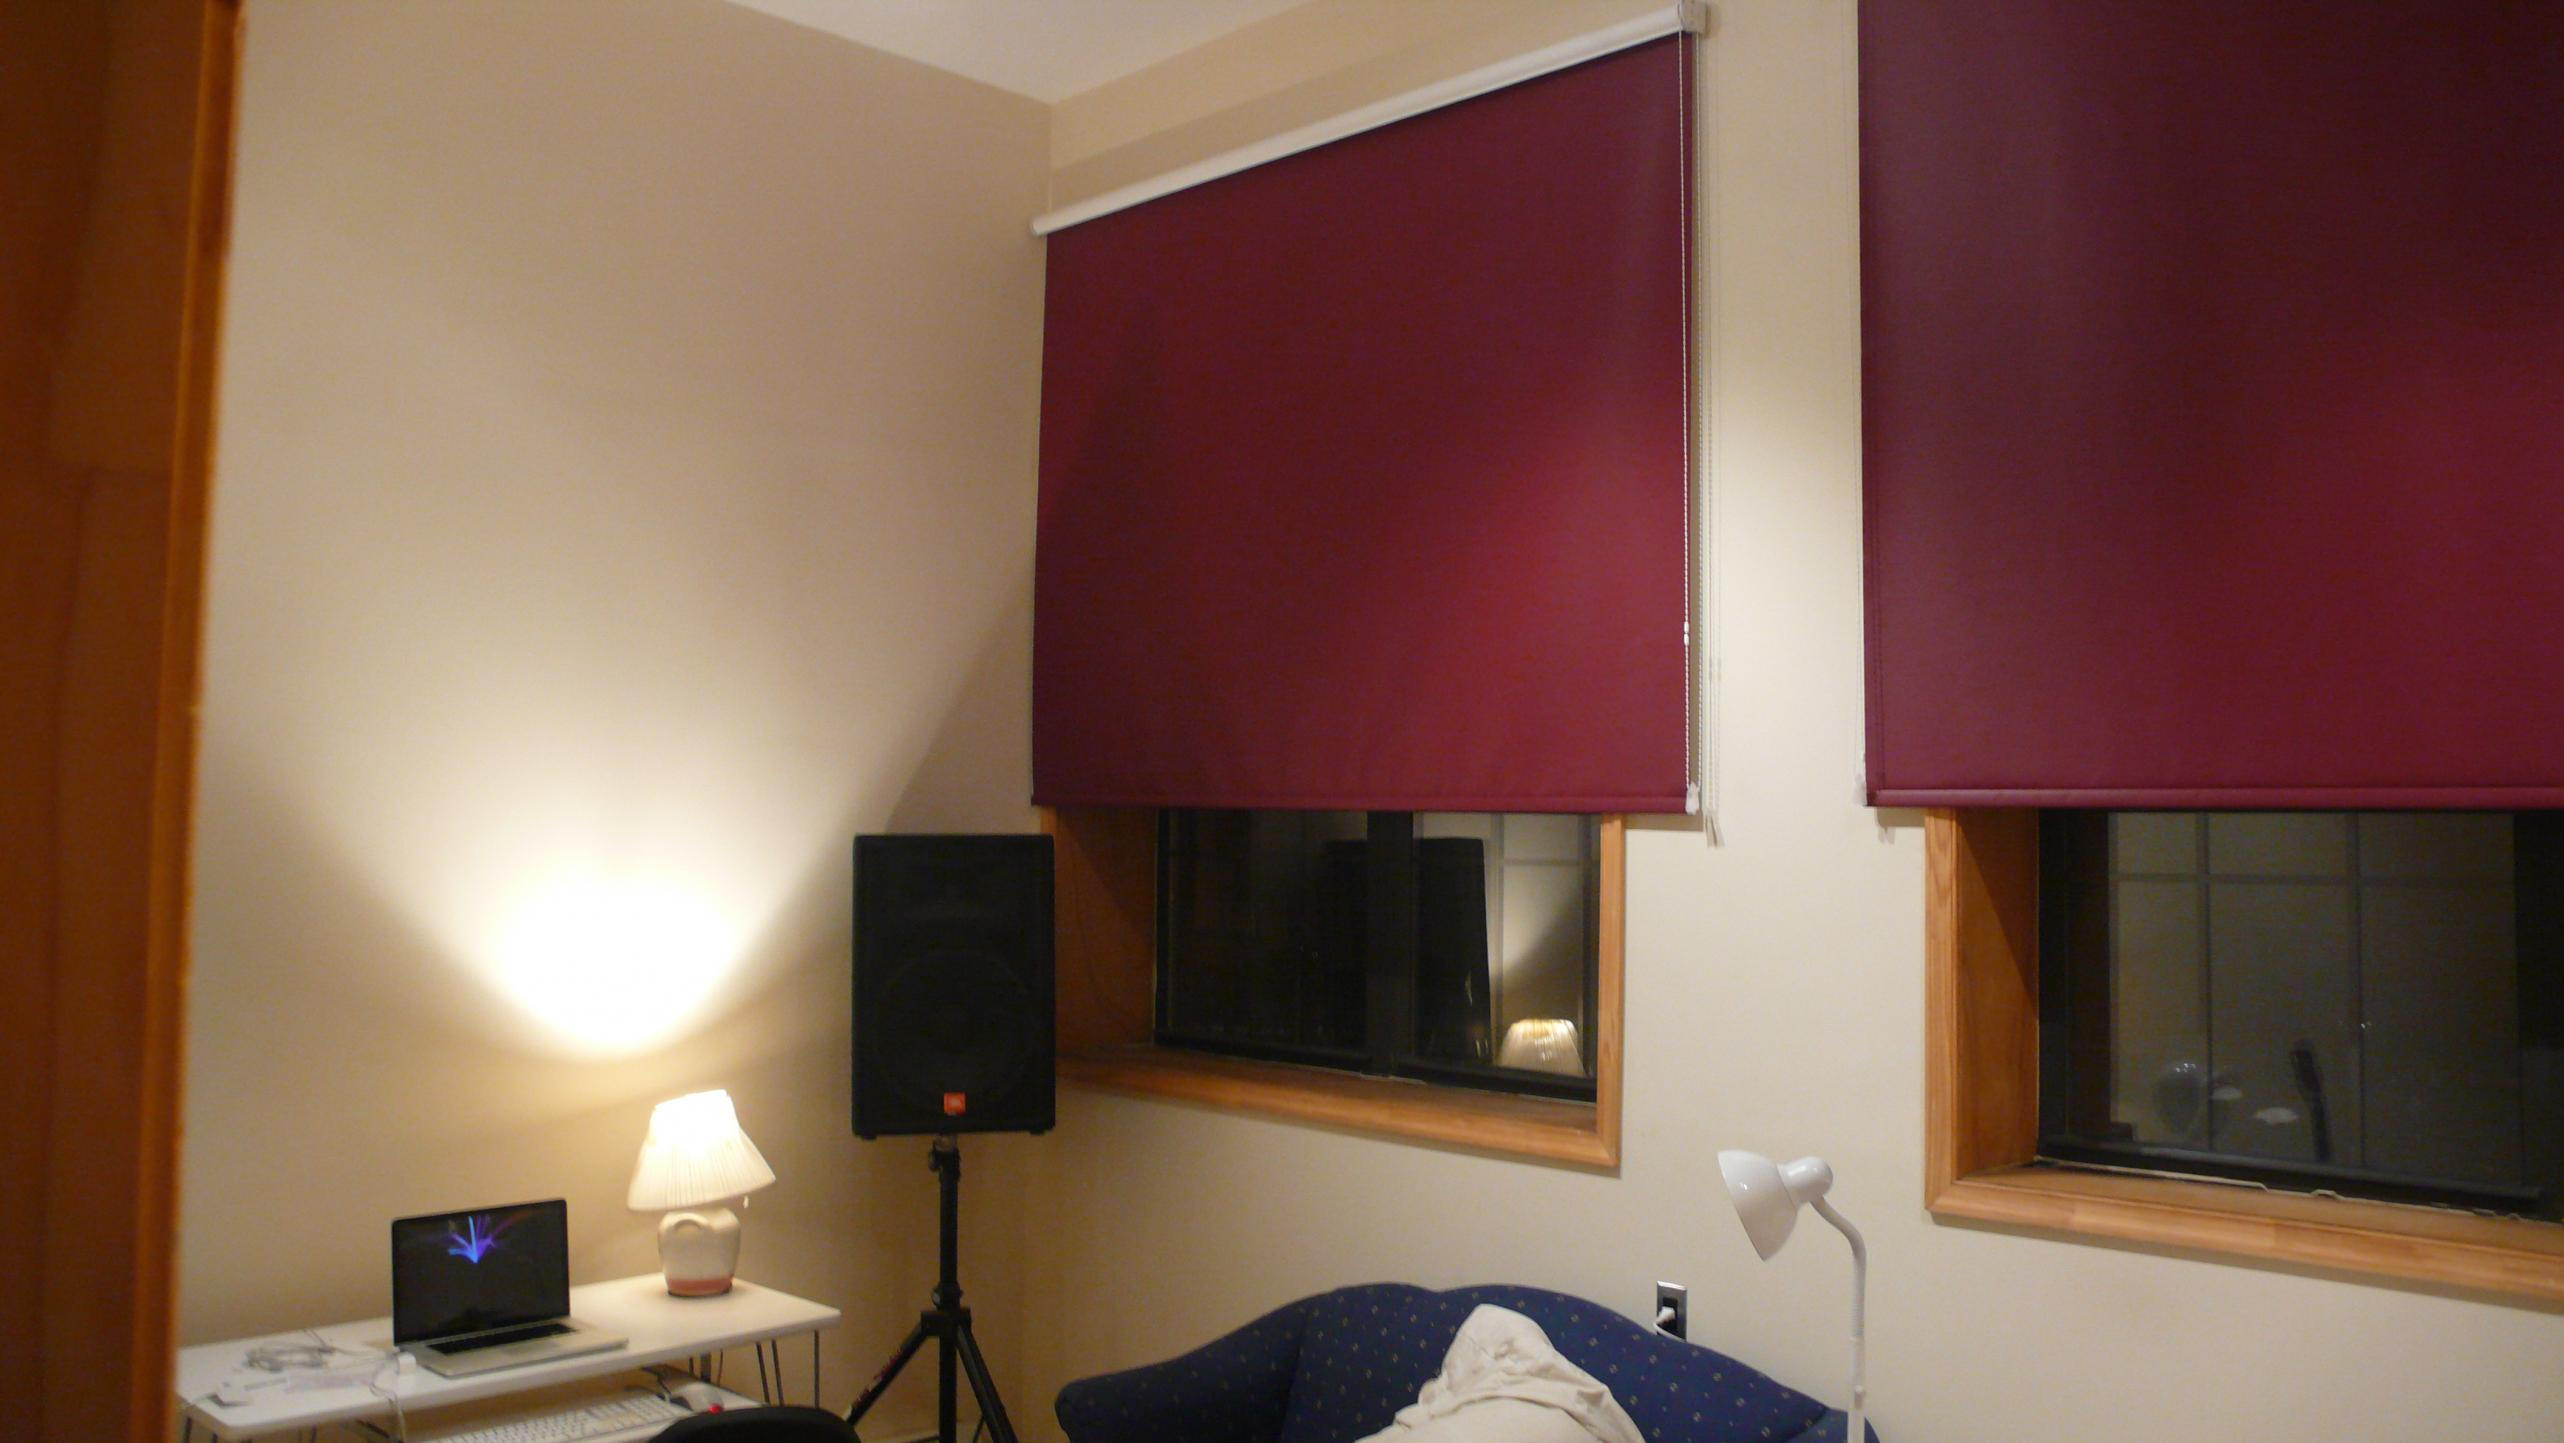 Bedroom studio basics before acoustic treatment - Bedroom studio acoustic treatment ...